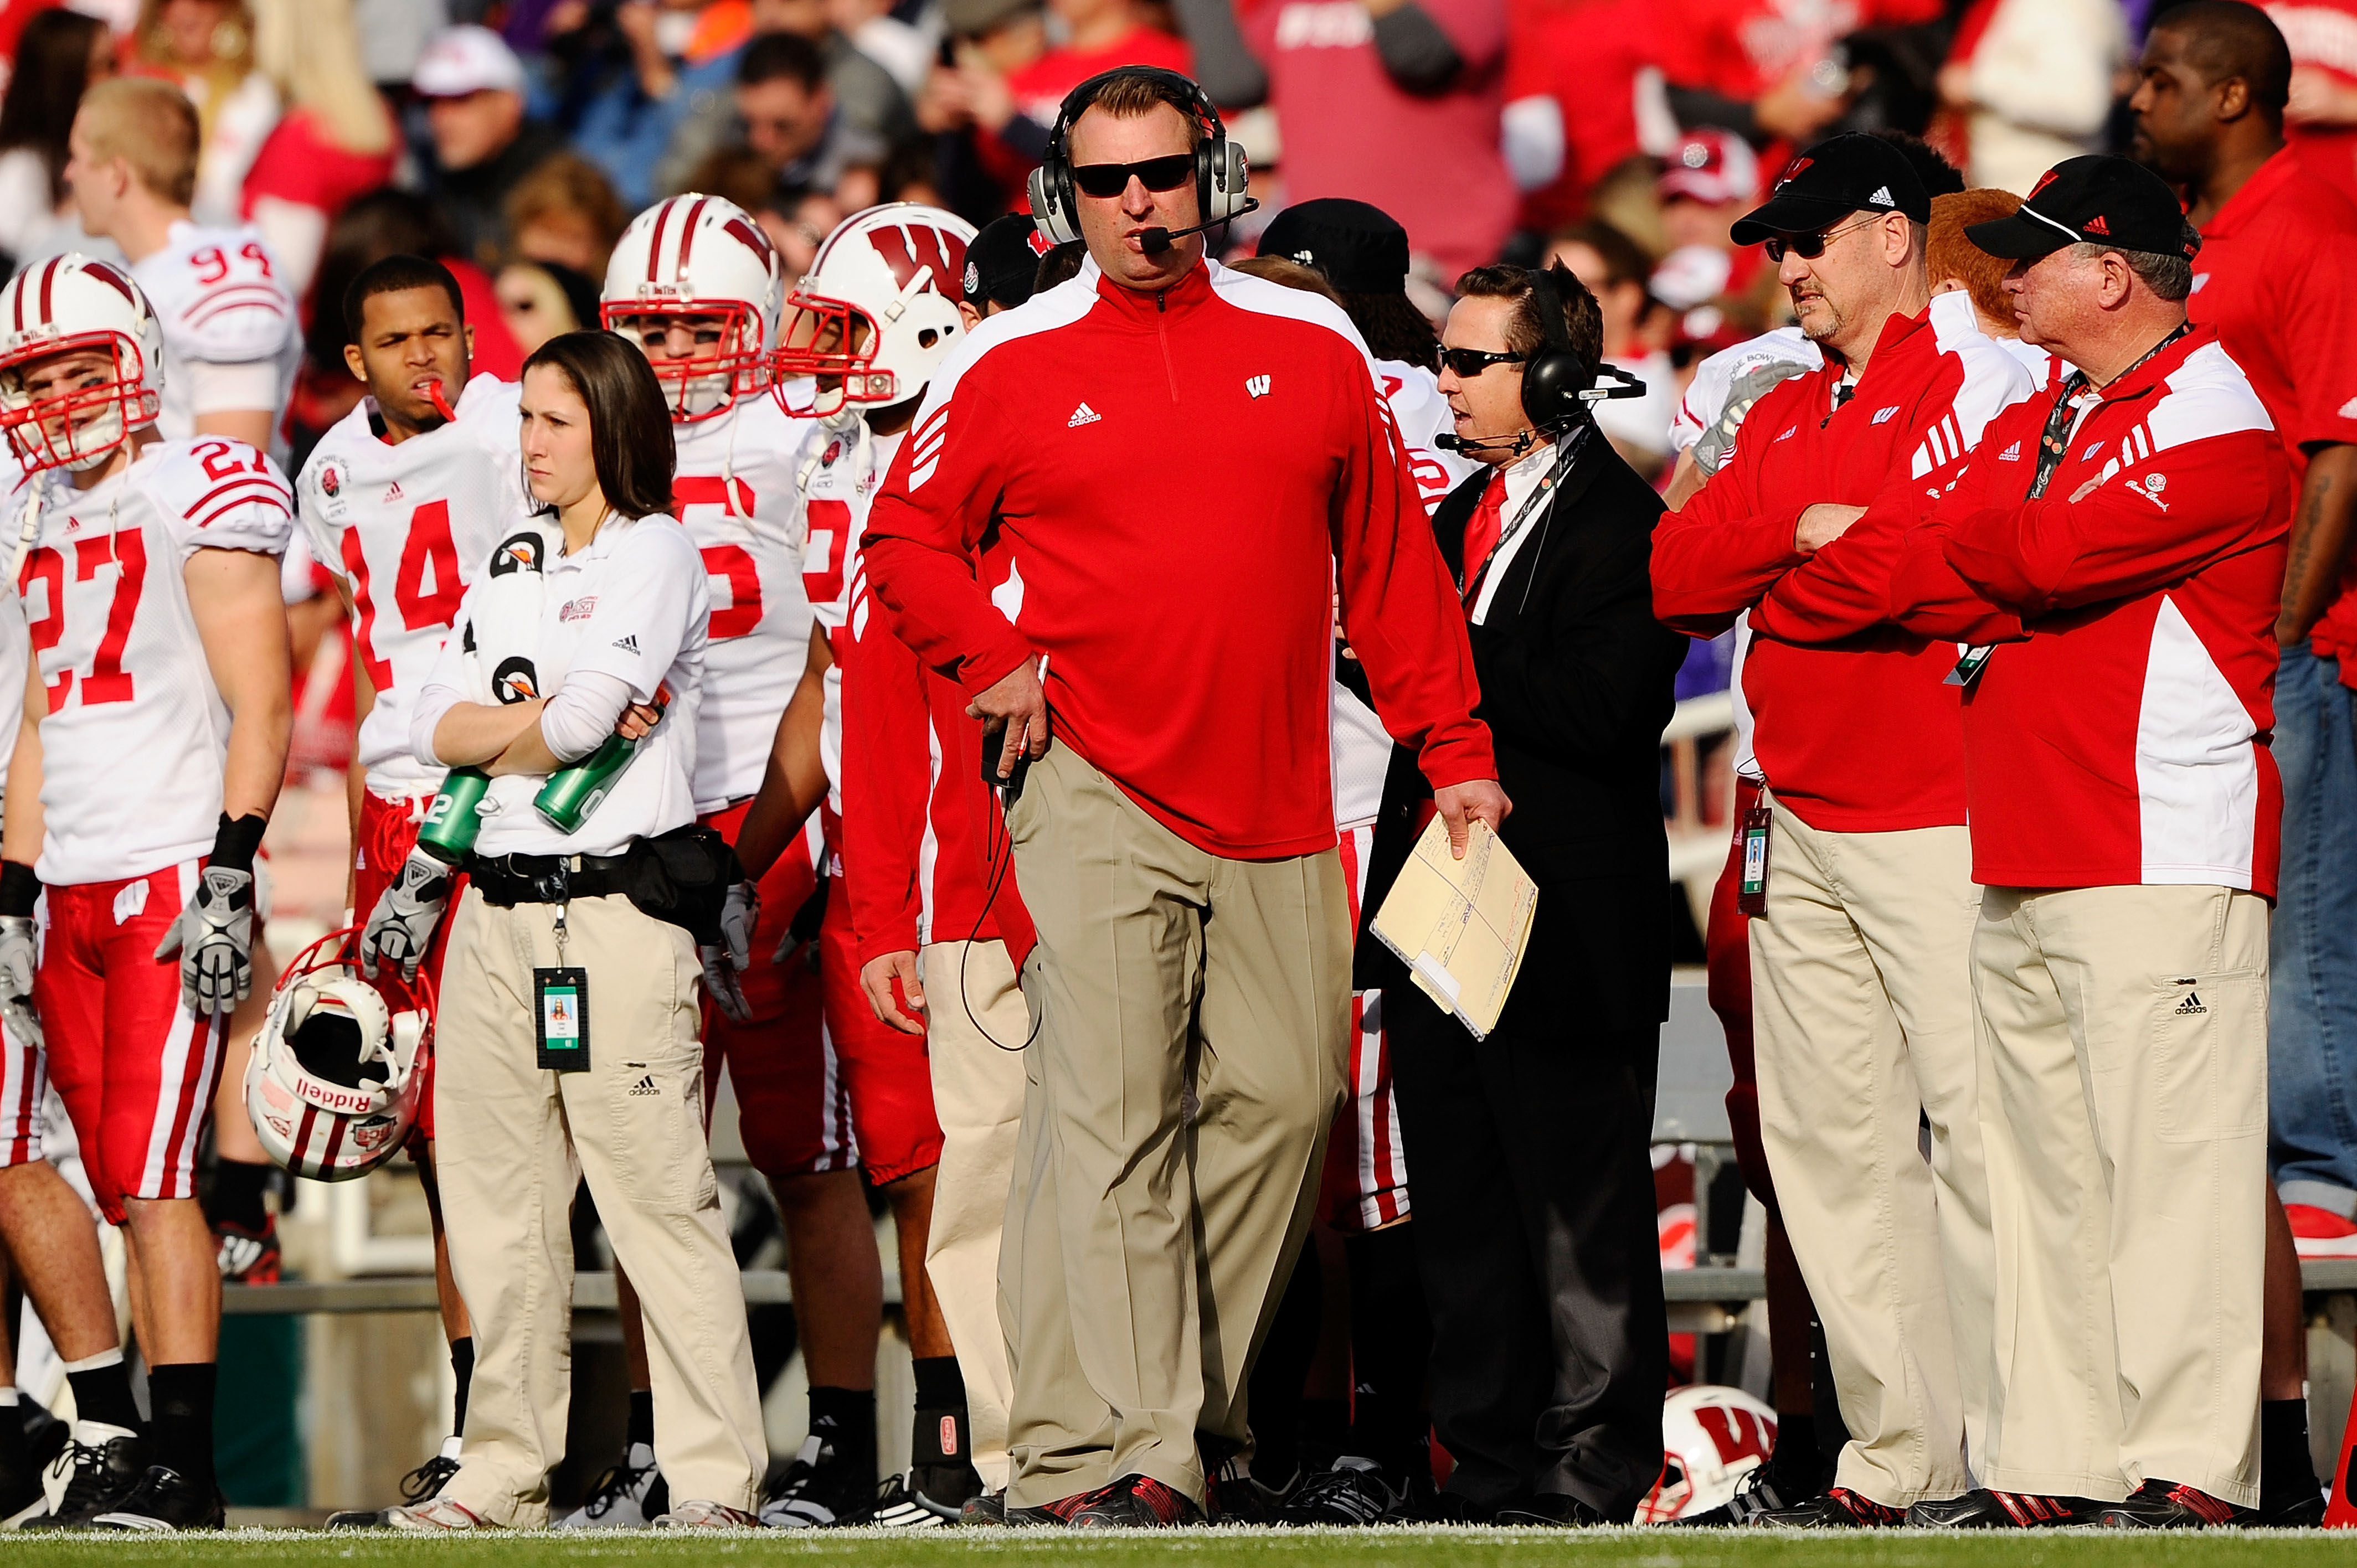 PASADENA, CA - JANUARY 01:  Head coach Bret Bielema of the Wisconsin Badgers stands on the sidelines against the TCU Horned Frogs during the 97th Rose Bowl game on January 1, 2011 in Pasadena, California.  (Photo by Kevork Djansezian/Getty Images)